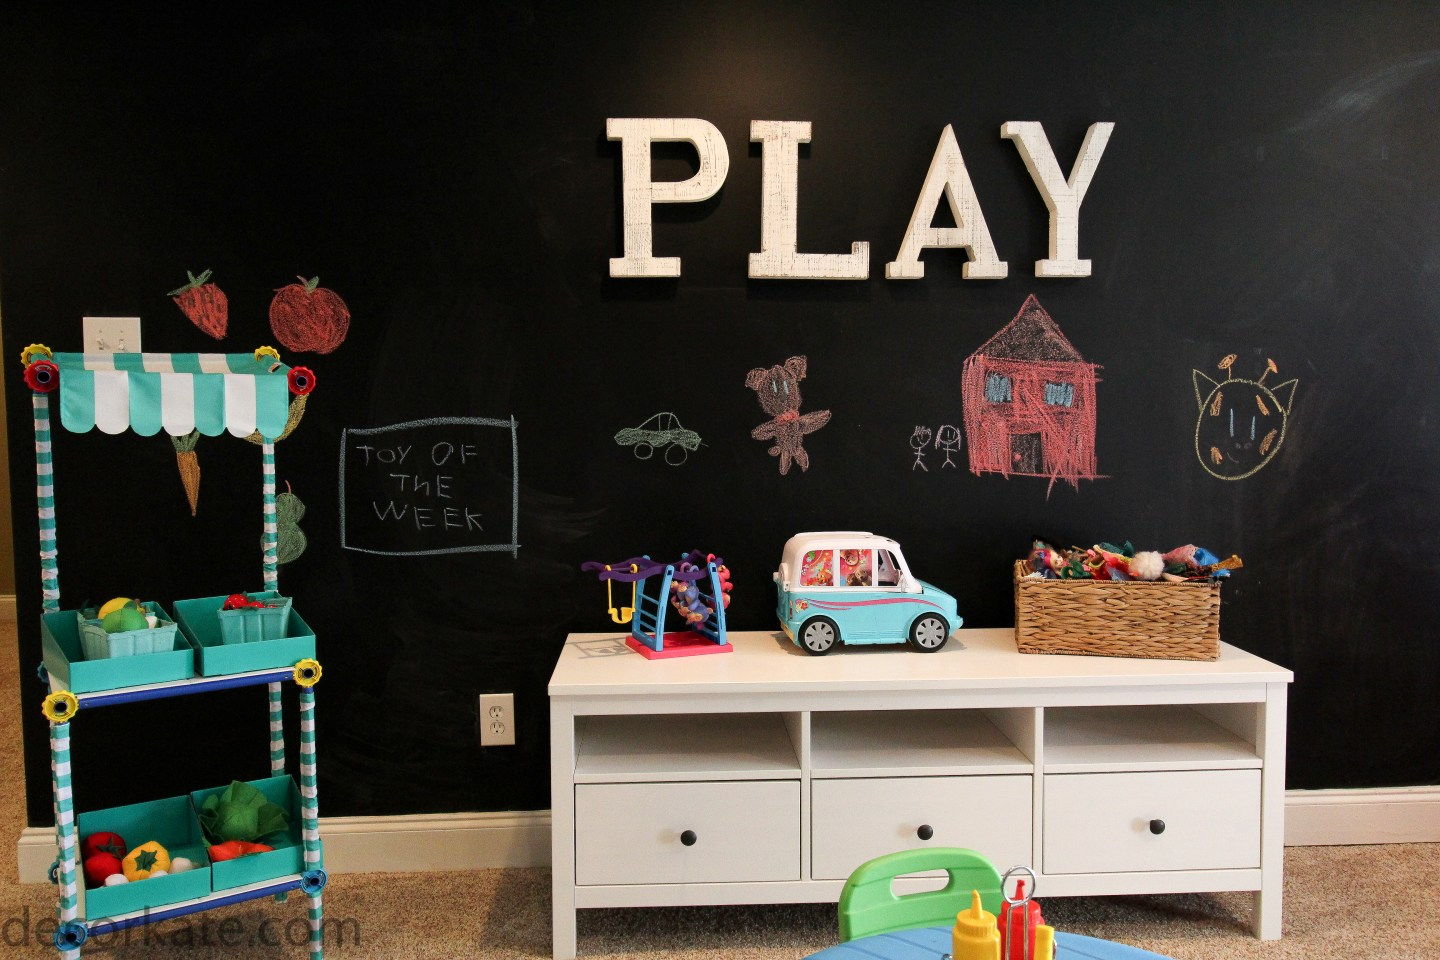 Playroom Chalkpaint Wall